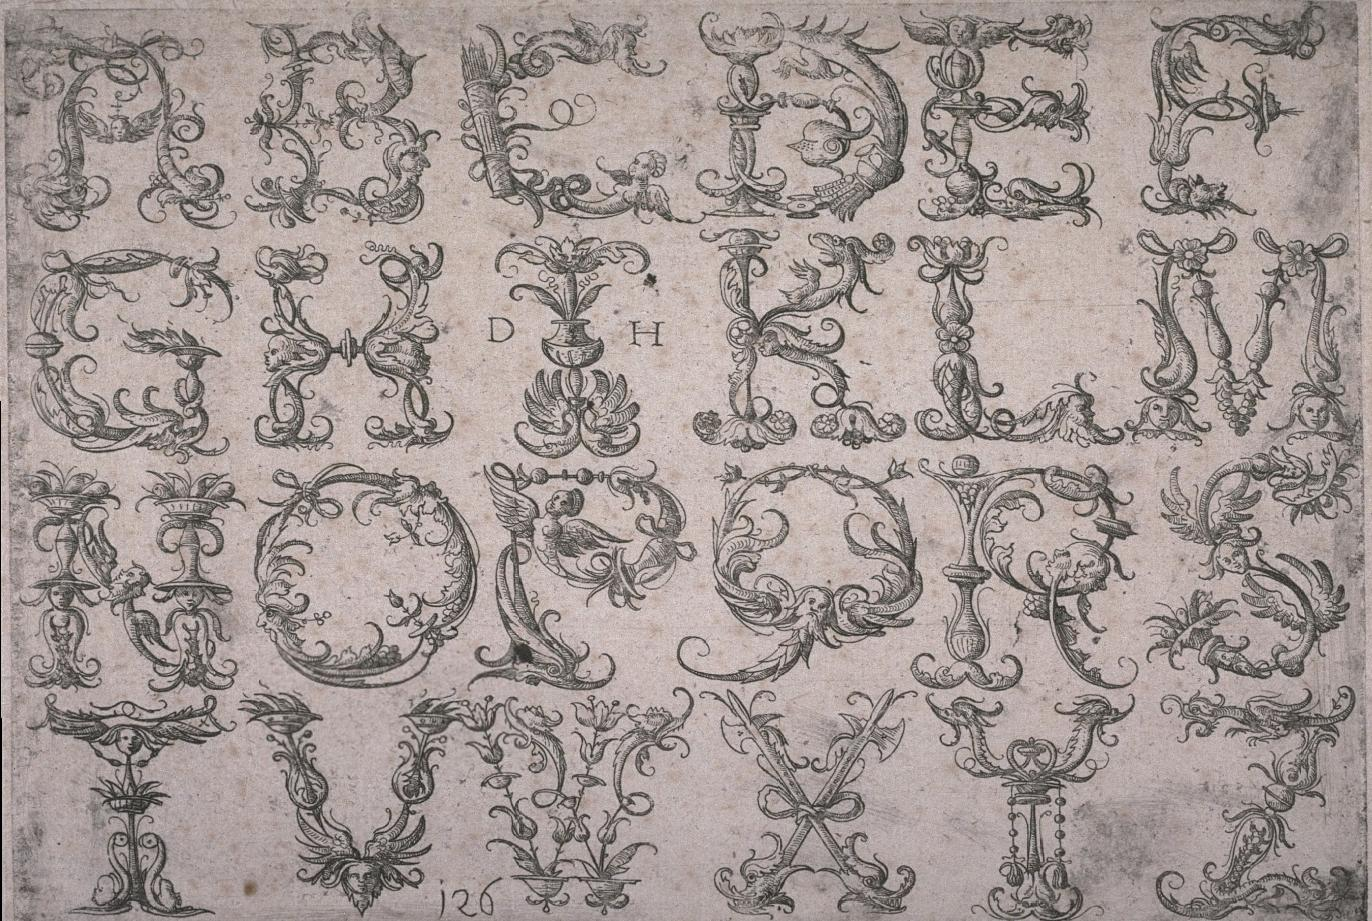 [Alphabet+of+Capital+Roman+letters+with+metaphorical+ornaments.JPG]